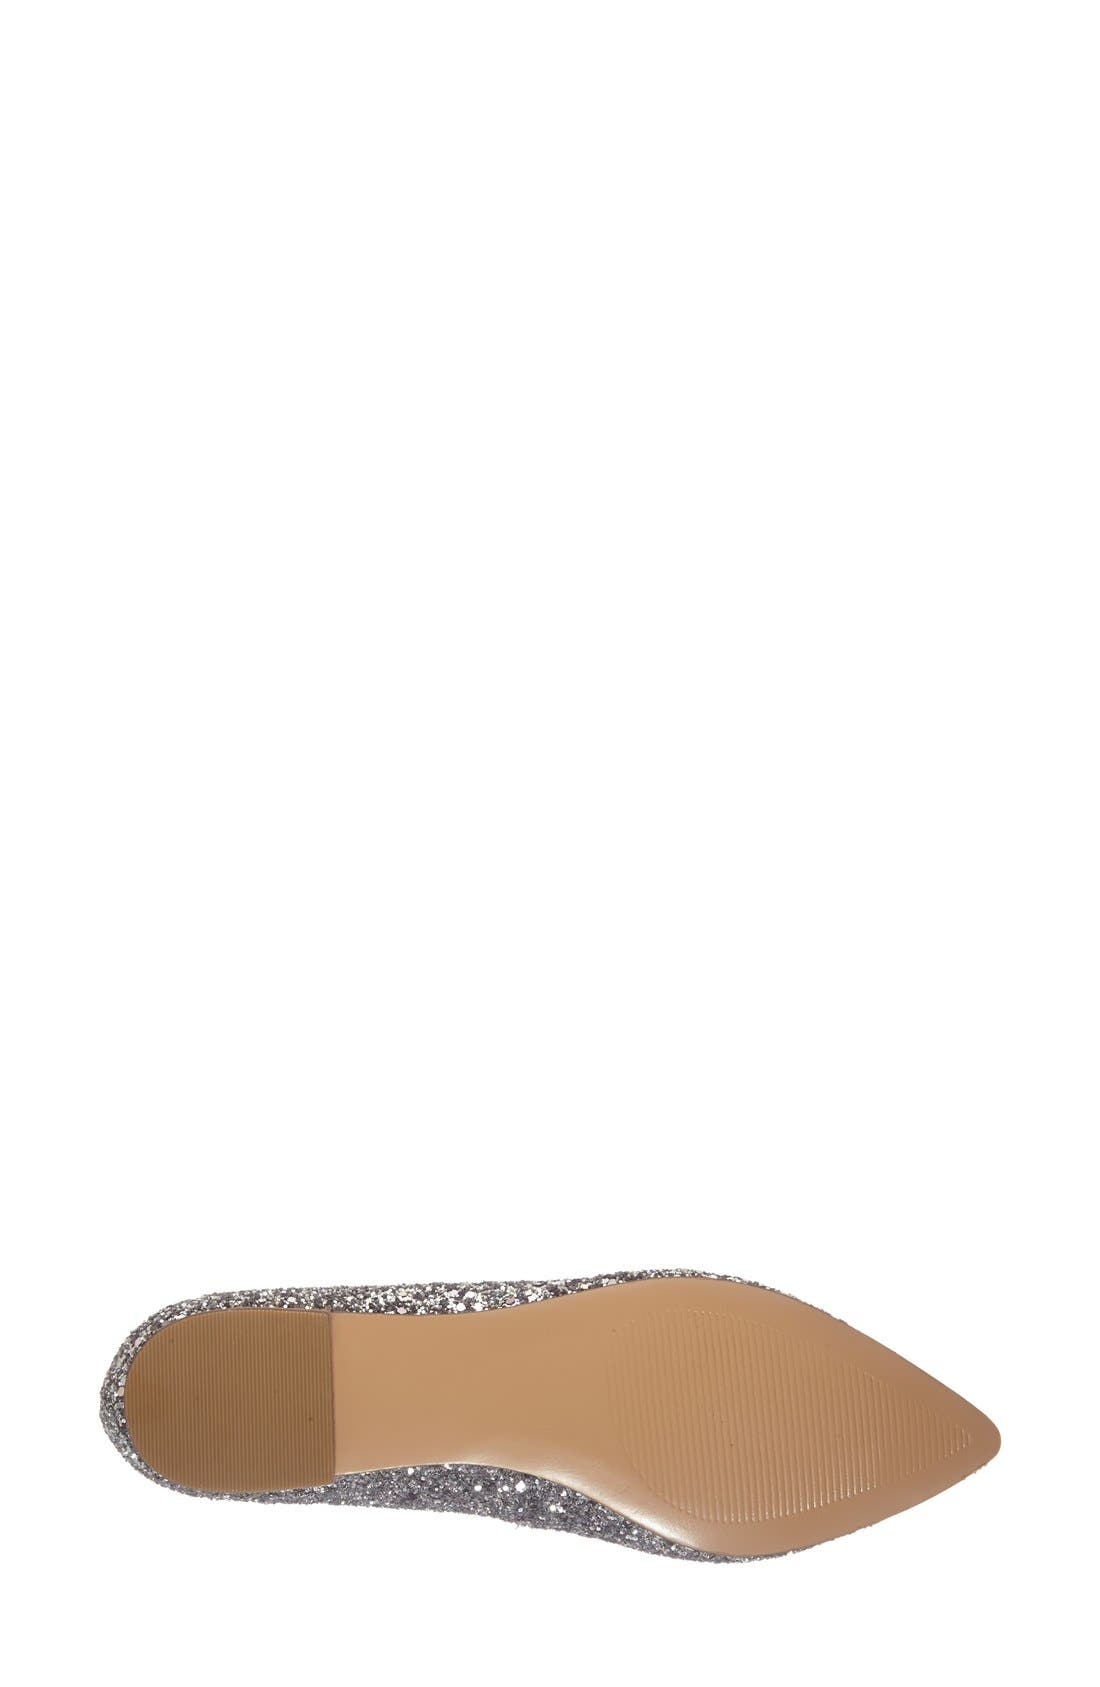 'Cammila' Pointy Toe Loafer,                             Alternate thumbnail 34, color,